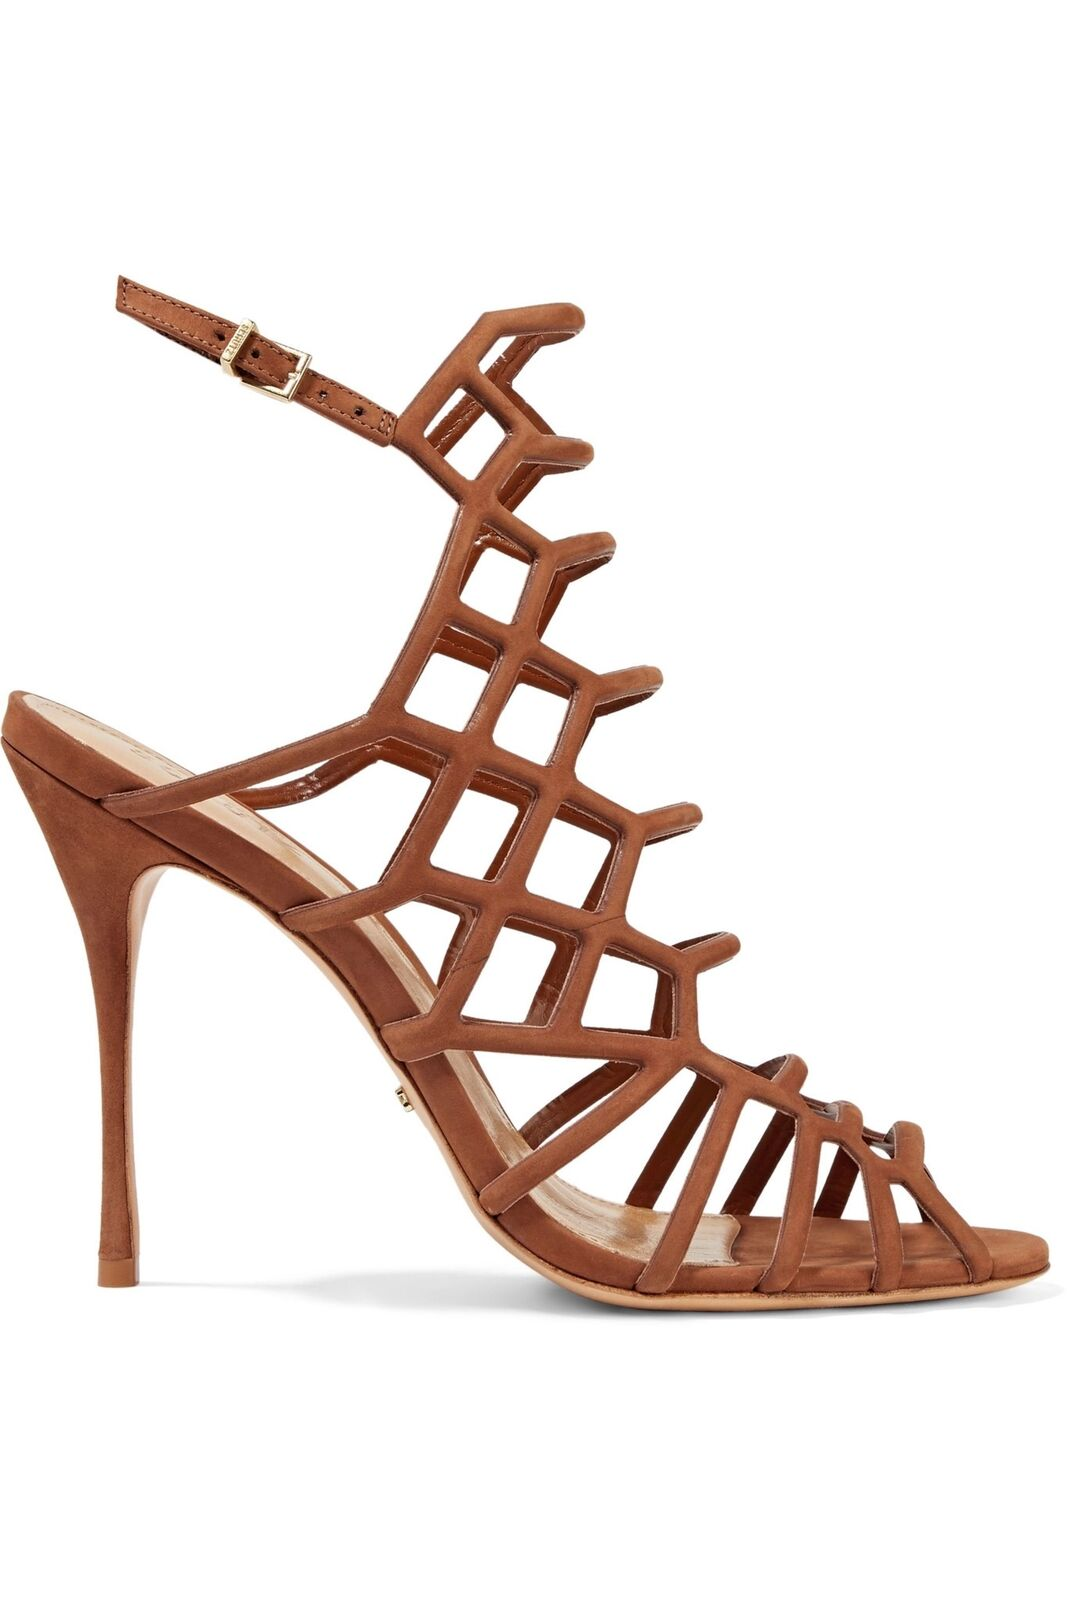 Schutz Juliana Juliana Juliana Ginger marron Nubuck Stiletto High Heel Thin Strappy Caged Sandals 2c6963